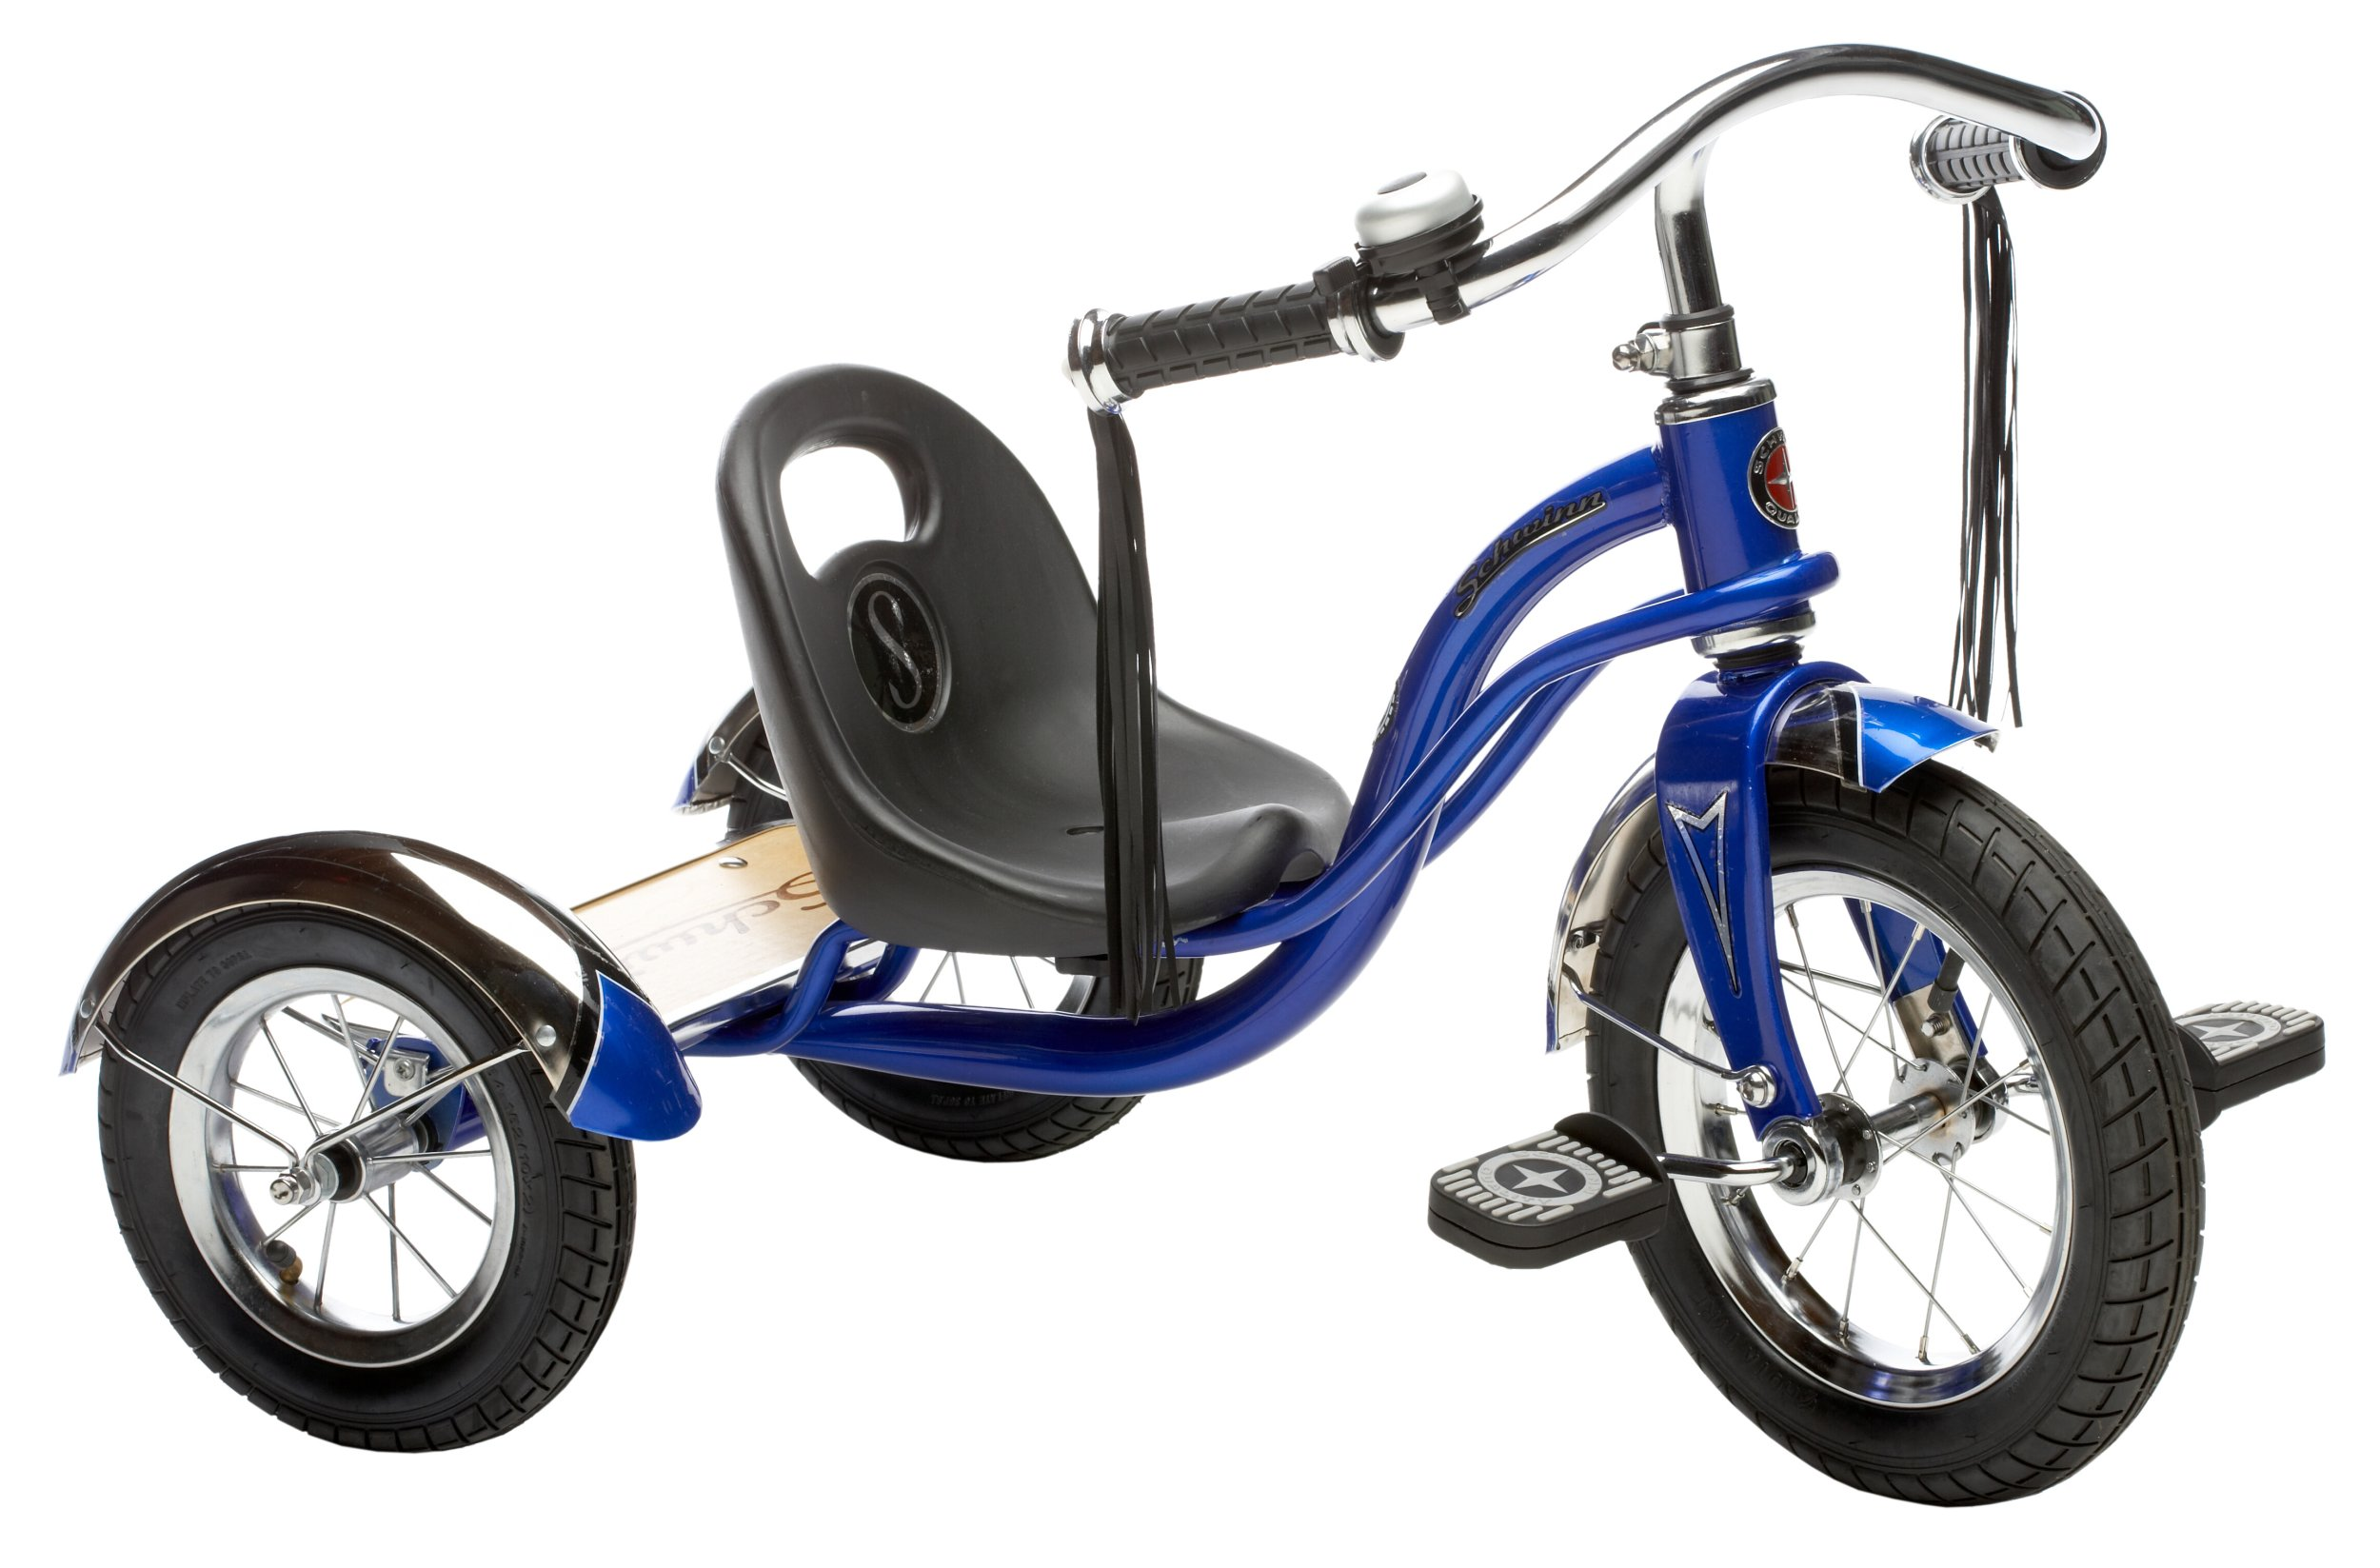 Schwinn Roadster Tricycle, 12'' wheel size, Trike Kids Bike Blue